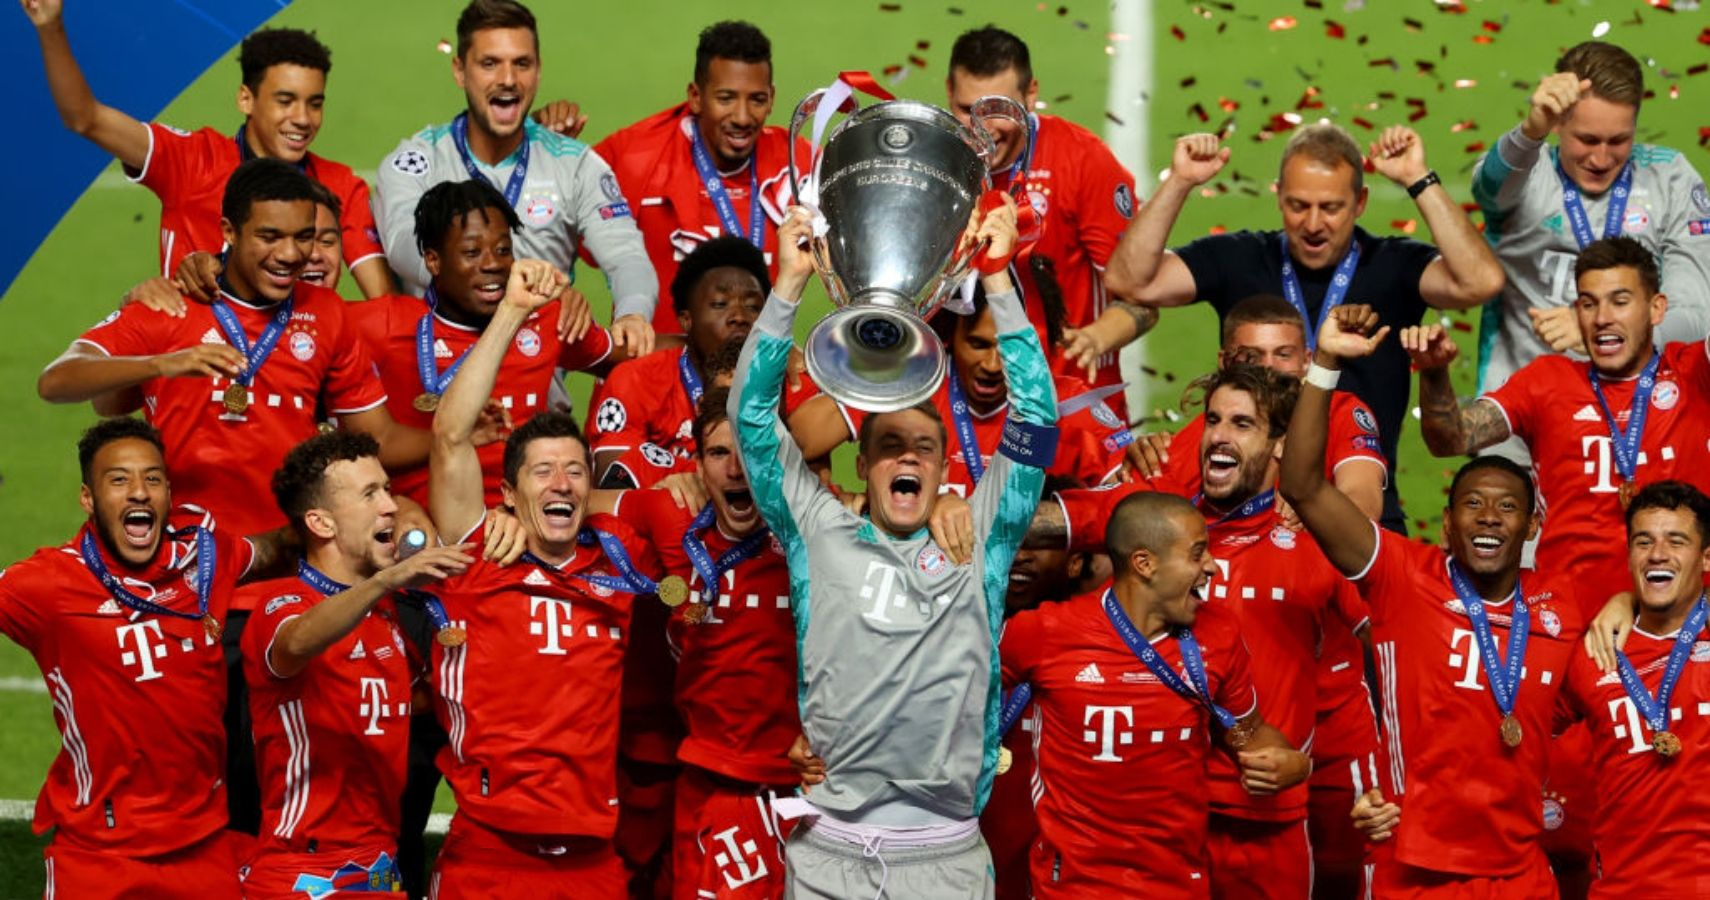 Bayern Munich Wins 6th Champions League Trophy With Close